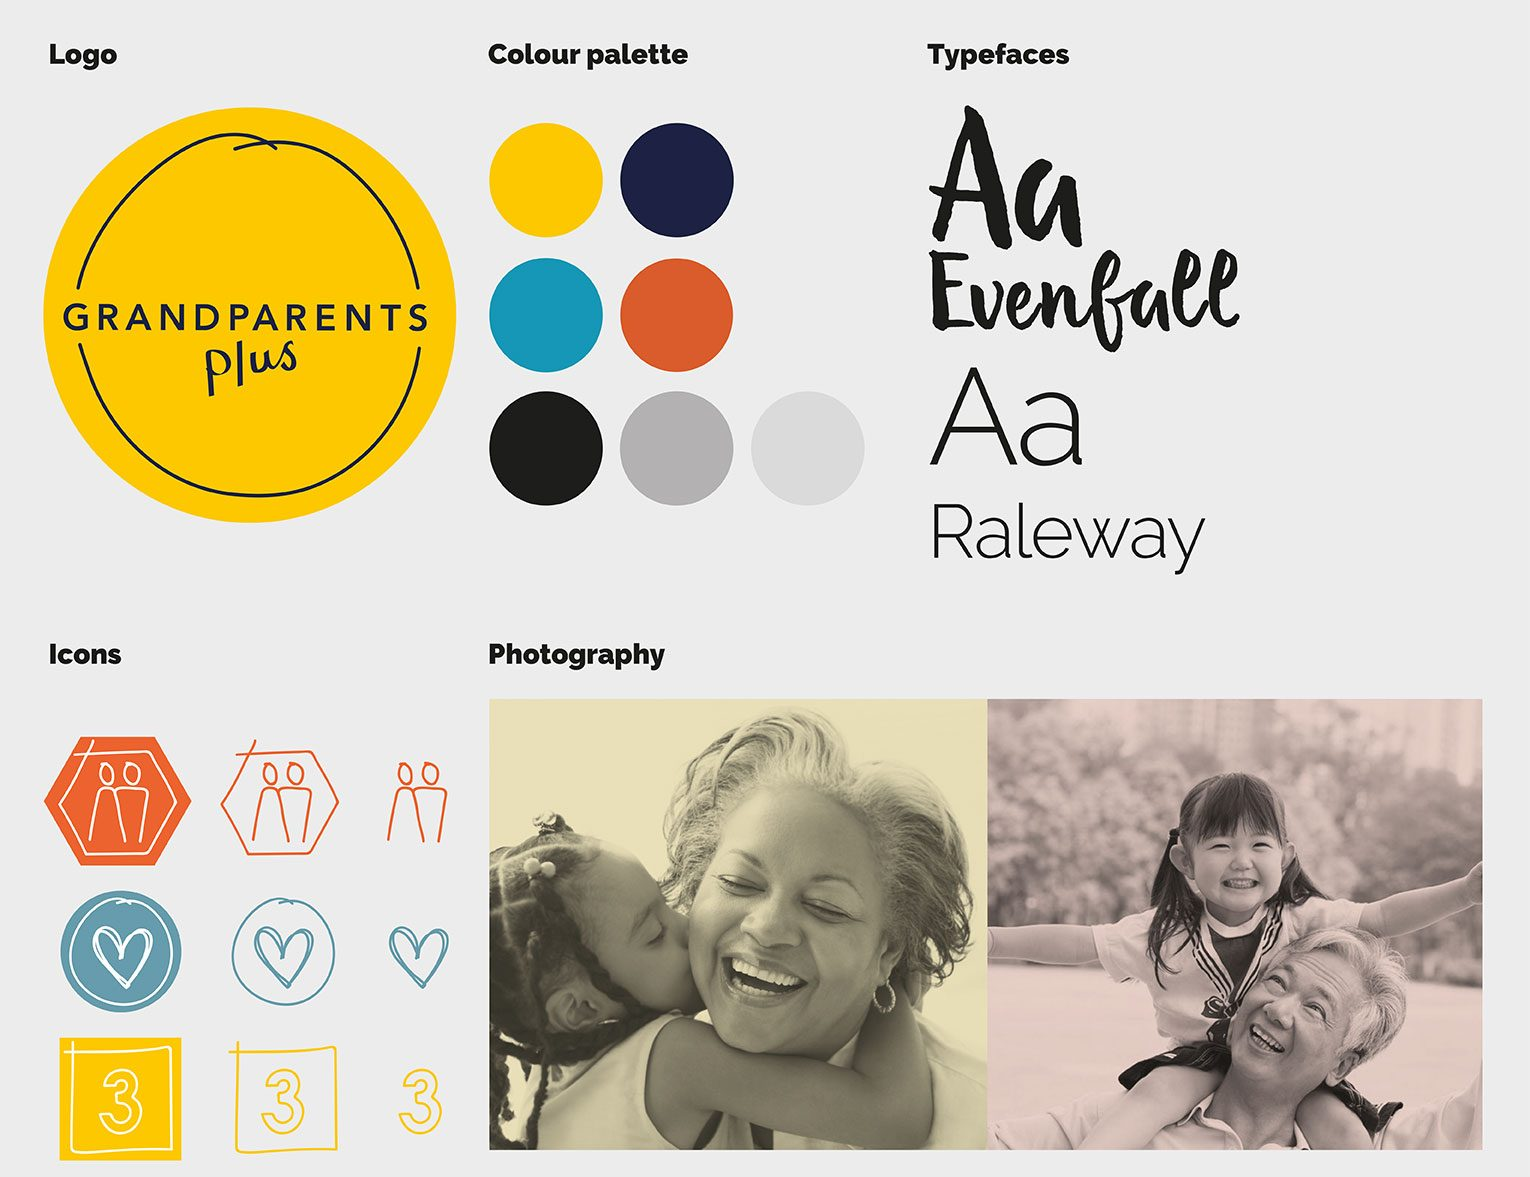 Snapshot of Grandparents Plus visual identity showing logo, colours, typeface, icons and images.